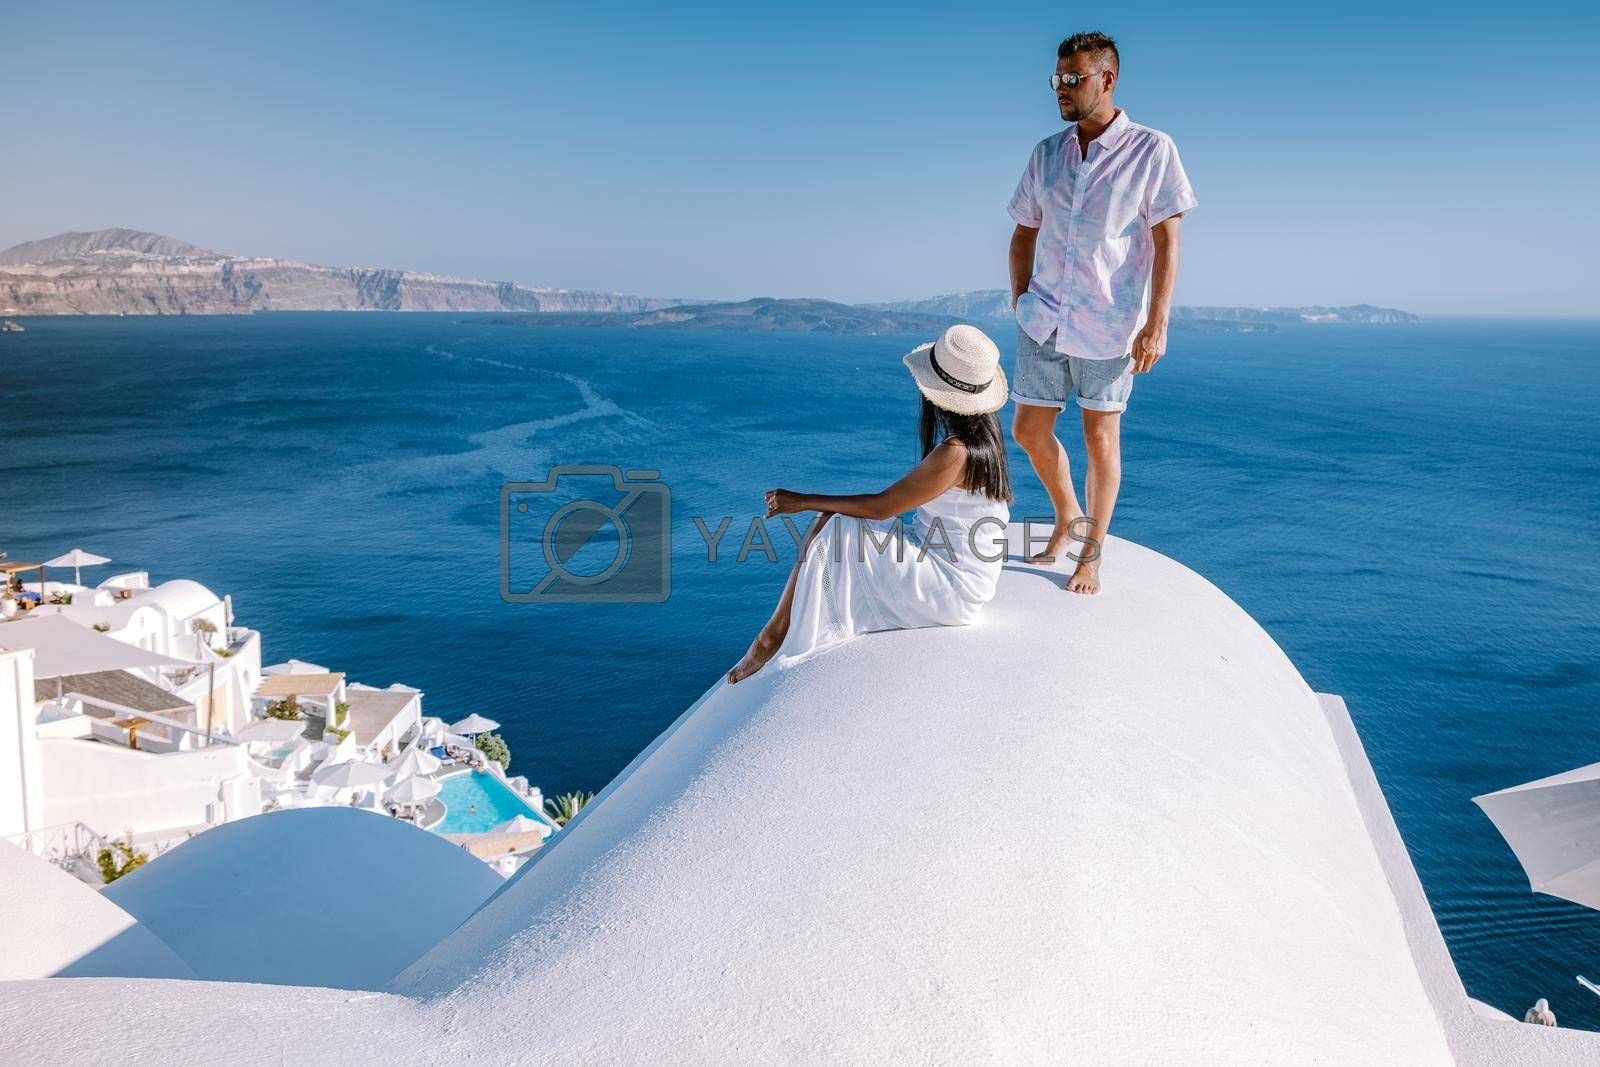 Royalty free image of couple men and woman on vacation Santorini, View to the sea and Volcano from Fira the capital of Santorini island in Greece by fokkebok